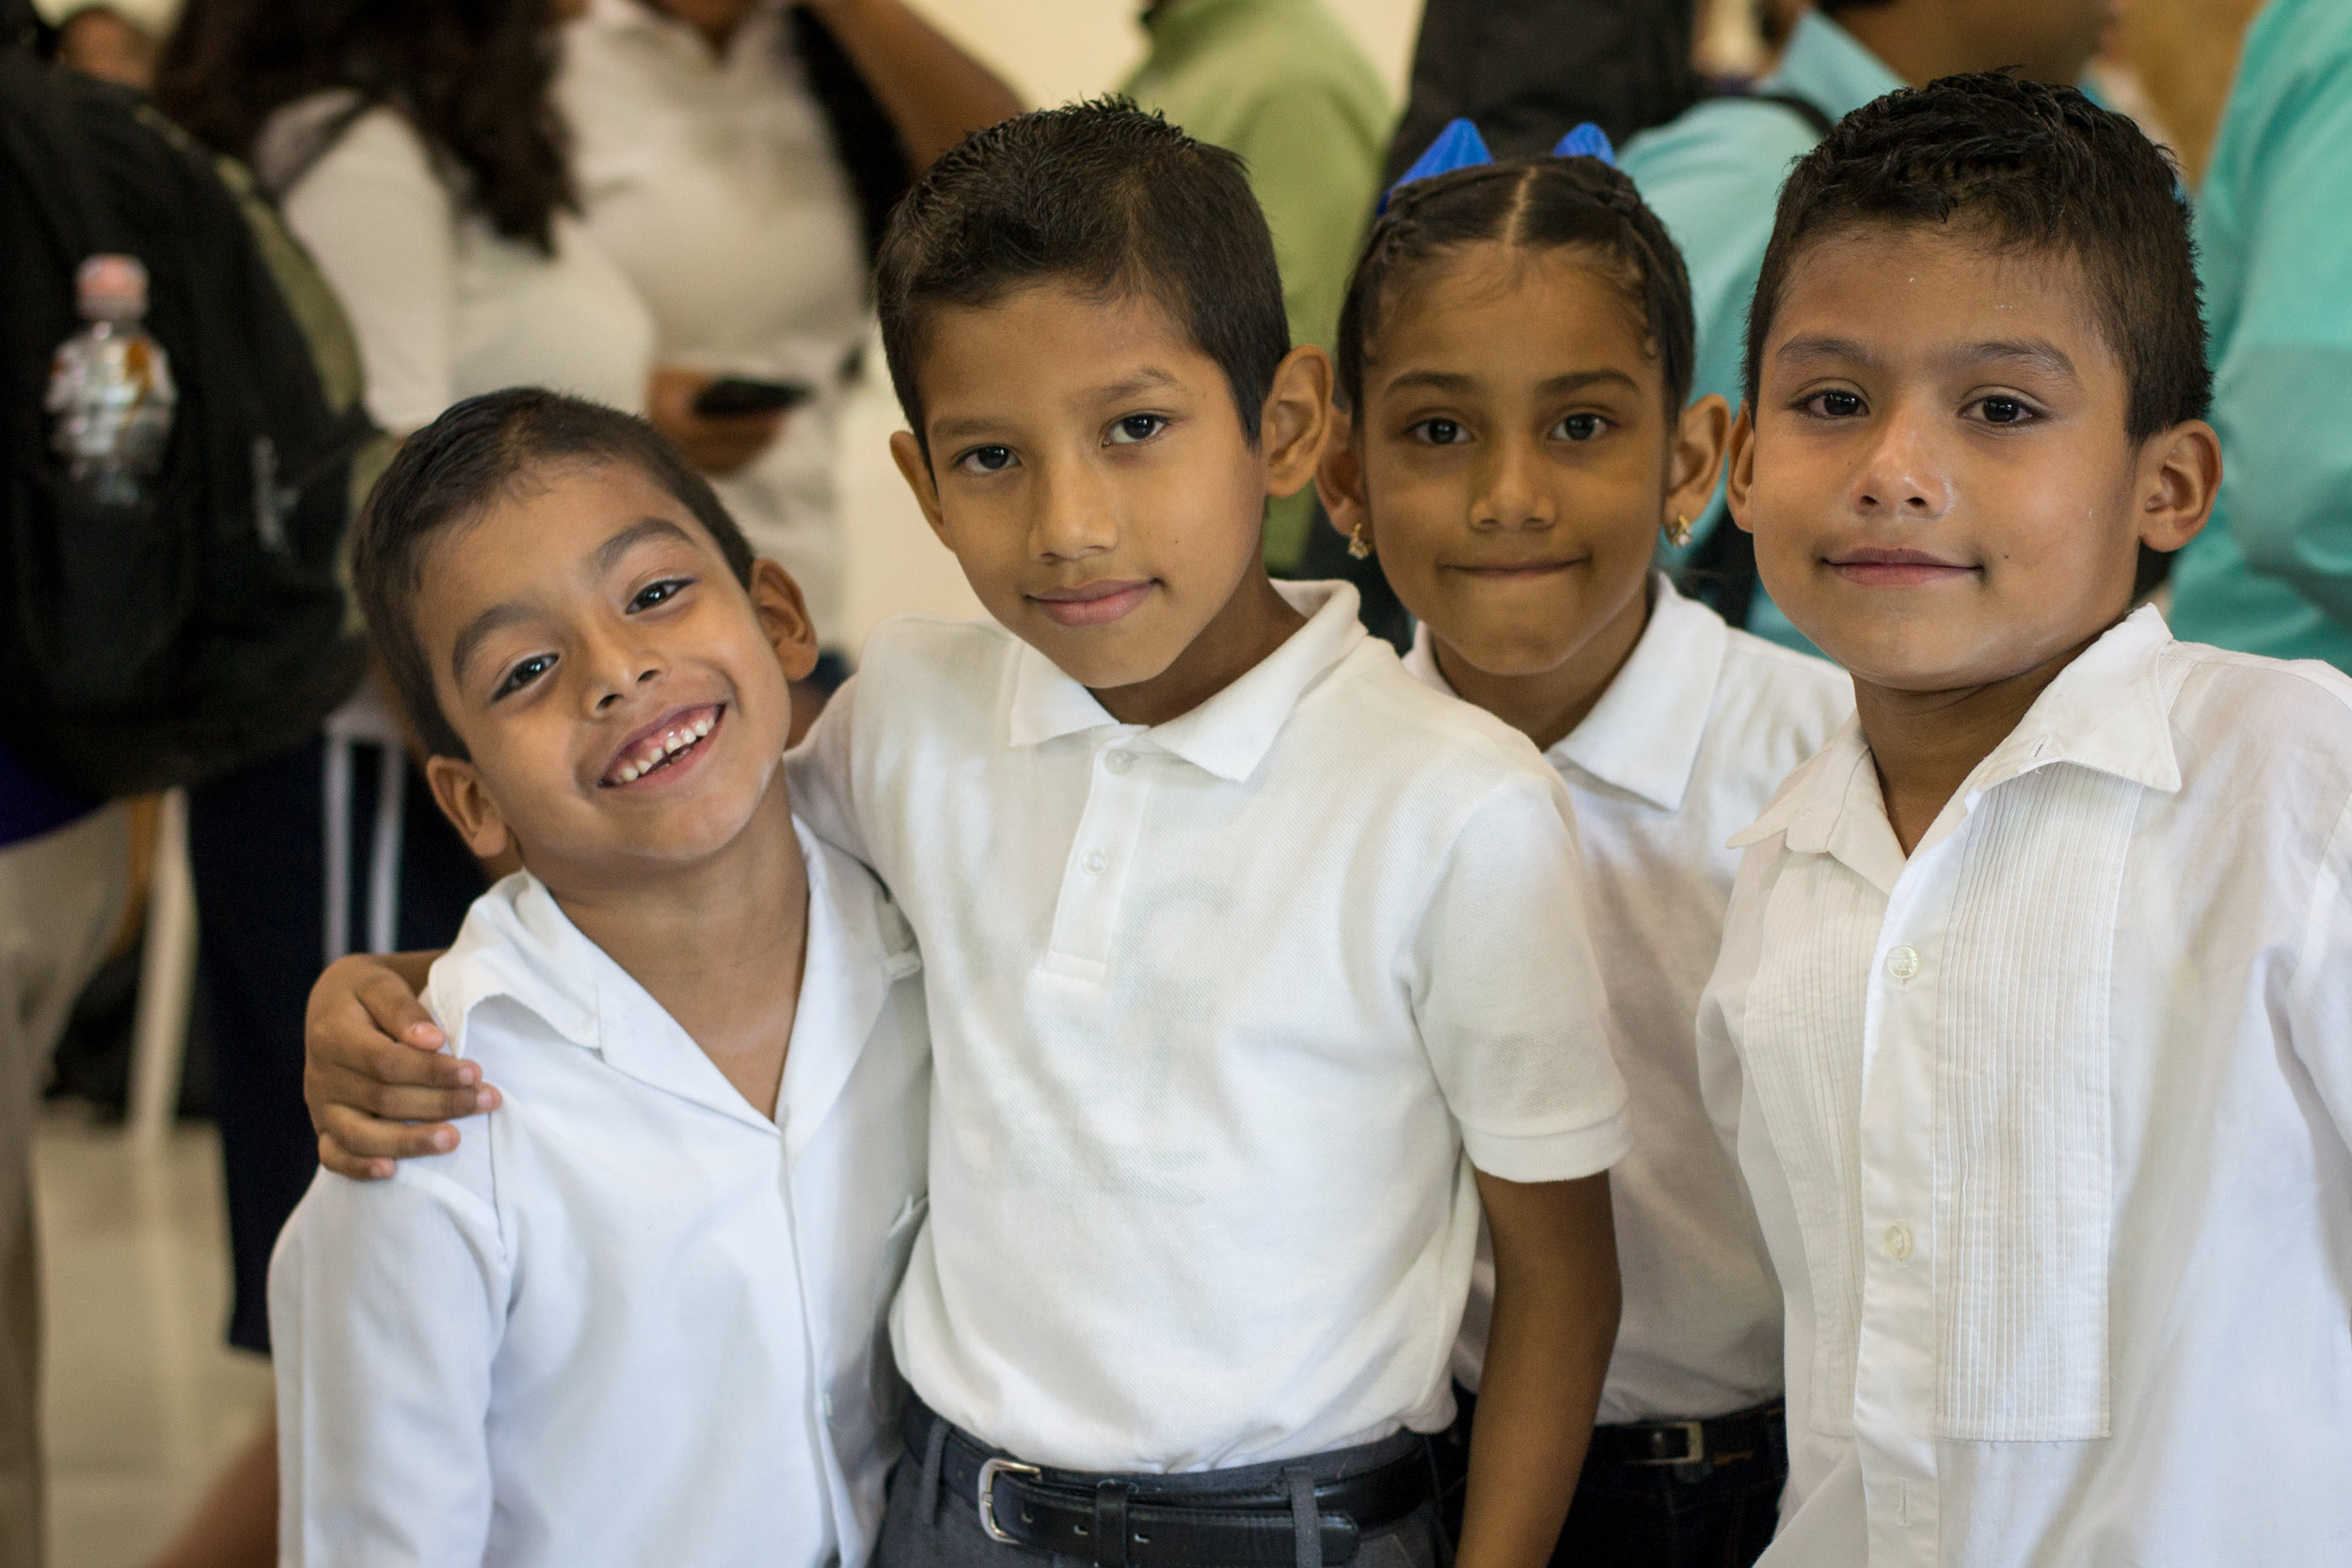 Compassion sponsored children in Mexico